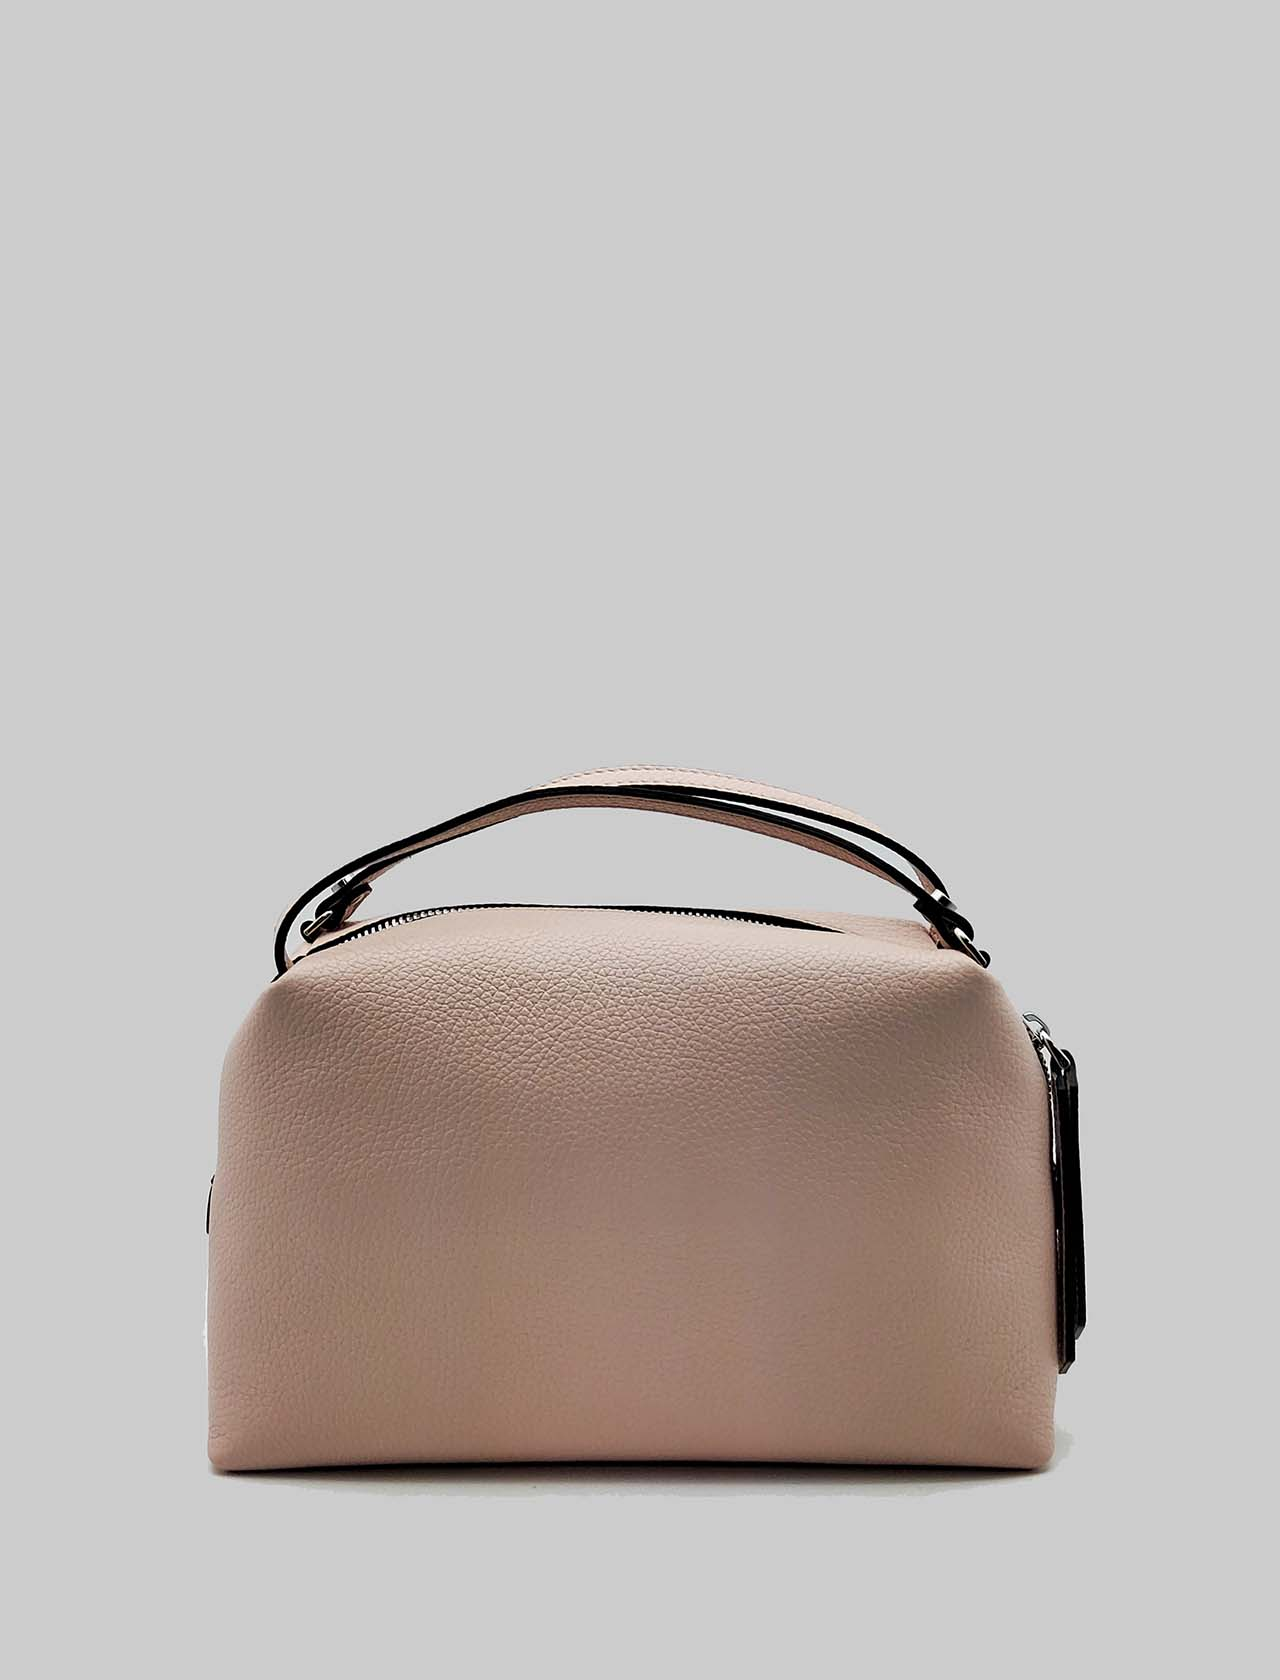 Alifa Woman's Bag in Powder Leather with Double Hand Handle and Removable Shoulder Strap Gianni Chiarini | Bags and backpacks | BS814810105